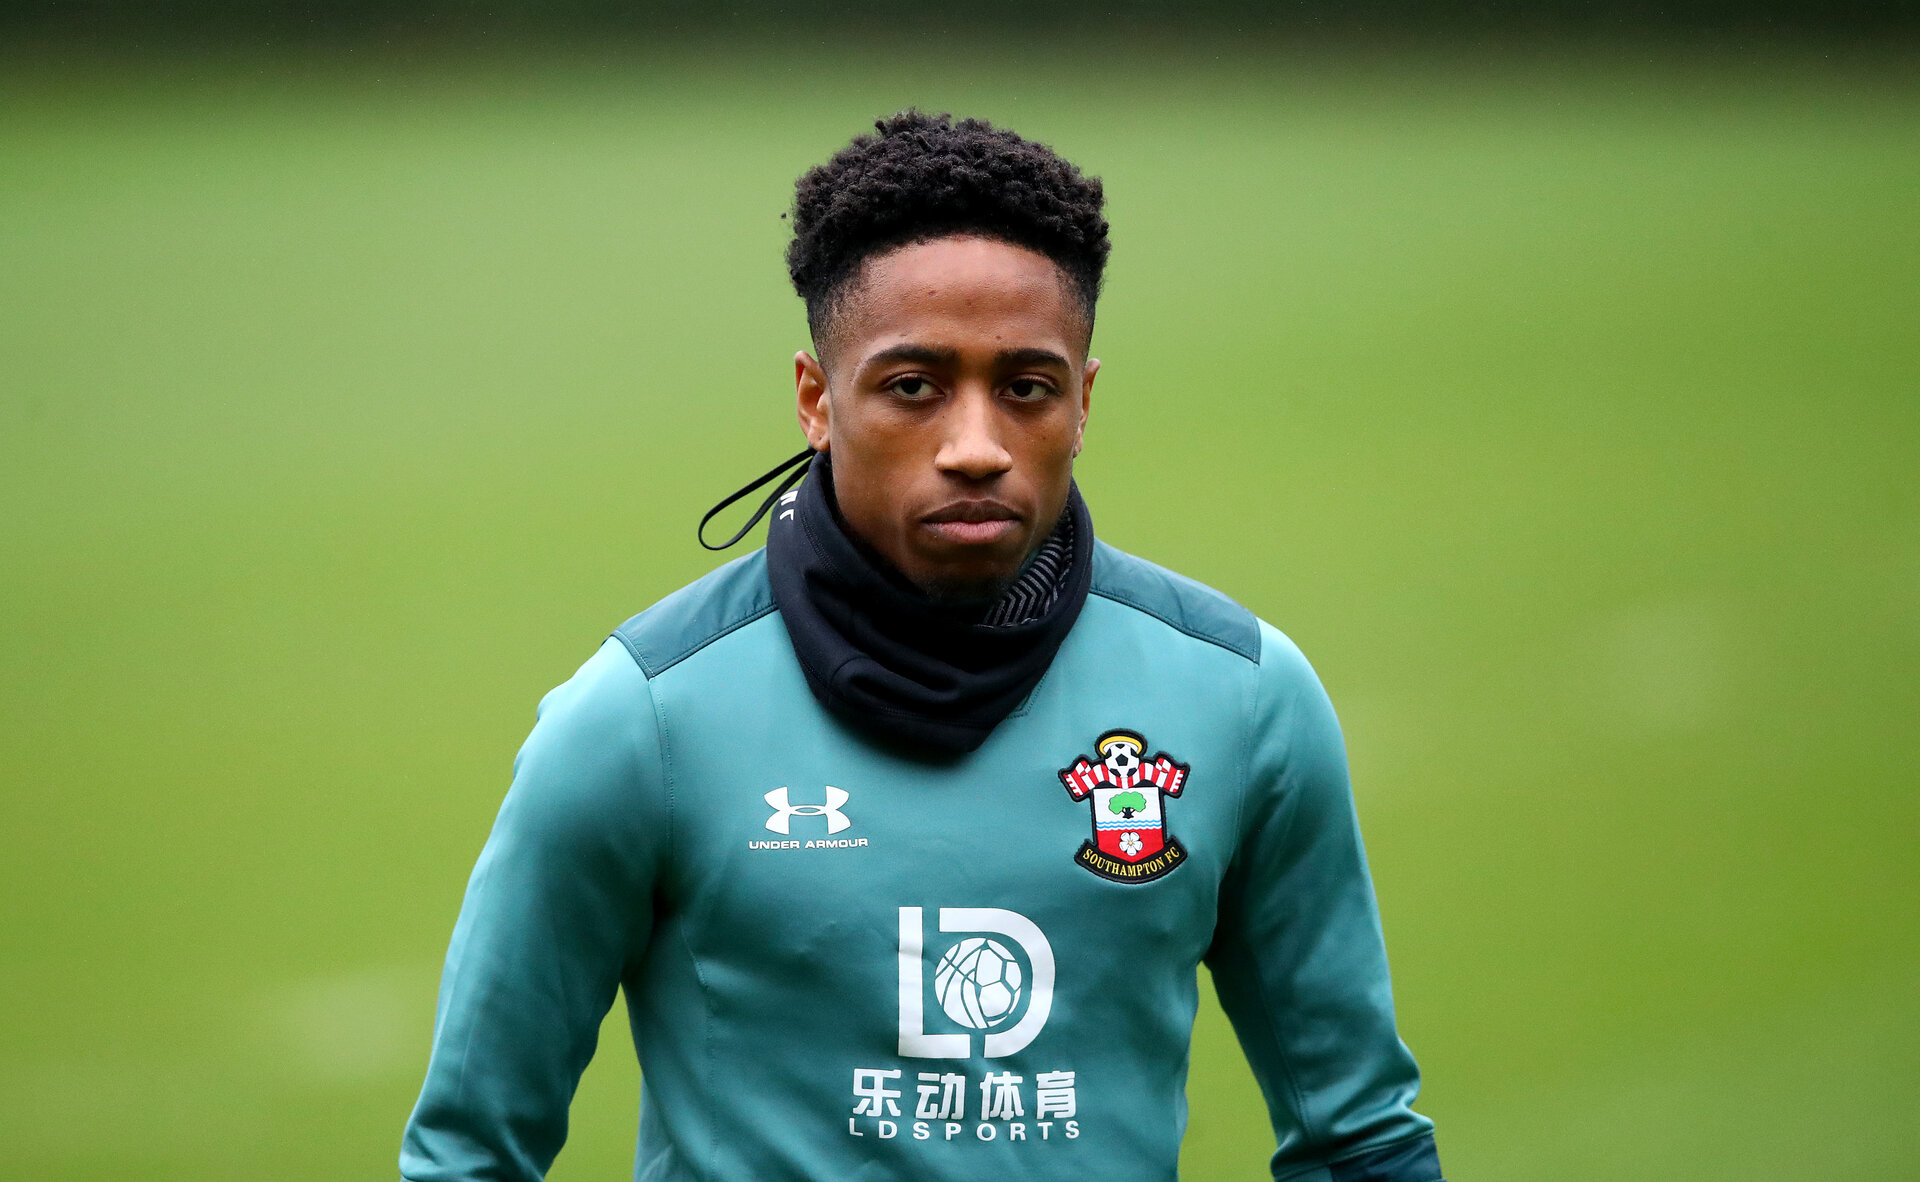 SOUTHAMPTON, ENGLAND - JANUARY 30: Kyle Walker-Peters during a Southampton FC training session at the Staplewood Campus on January 30, 2020 in Southampton, England. (Photo by Matt Watson/Southampton FC via Getty Images)